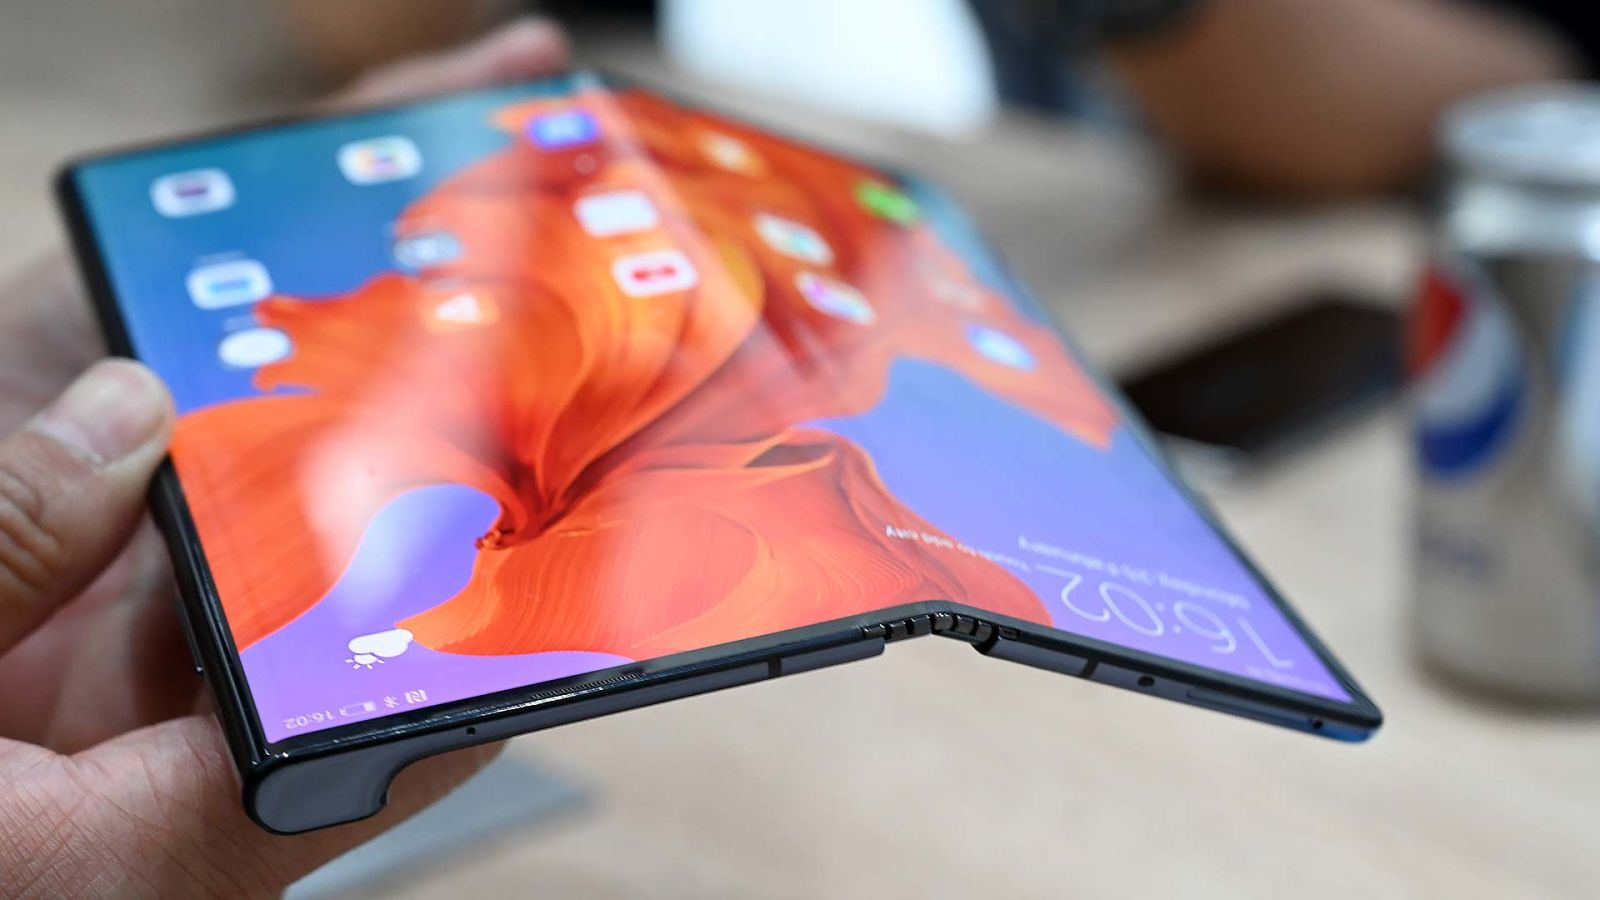 consumer-tech foldable foldable-phones galaxy-fold tag-mobile samsung smartphones technology